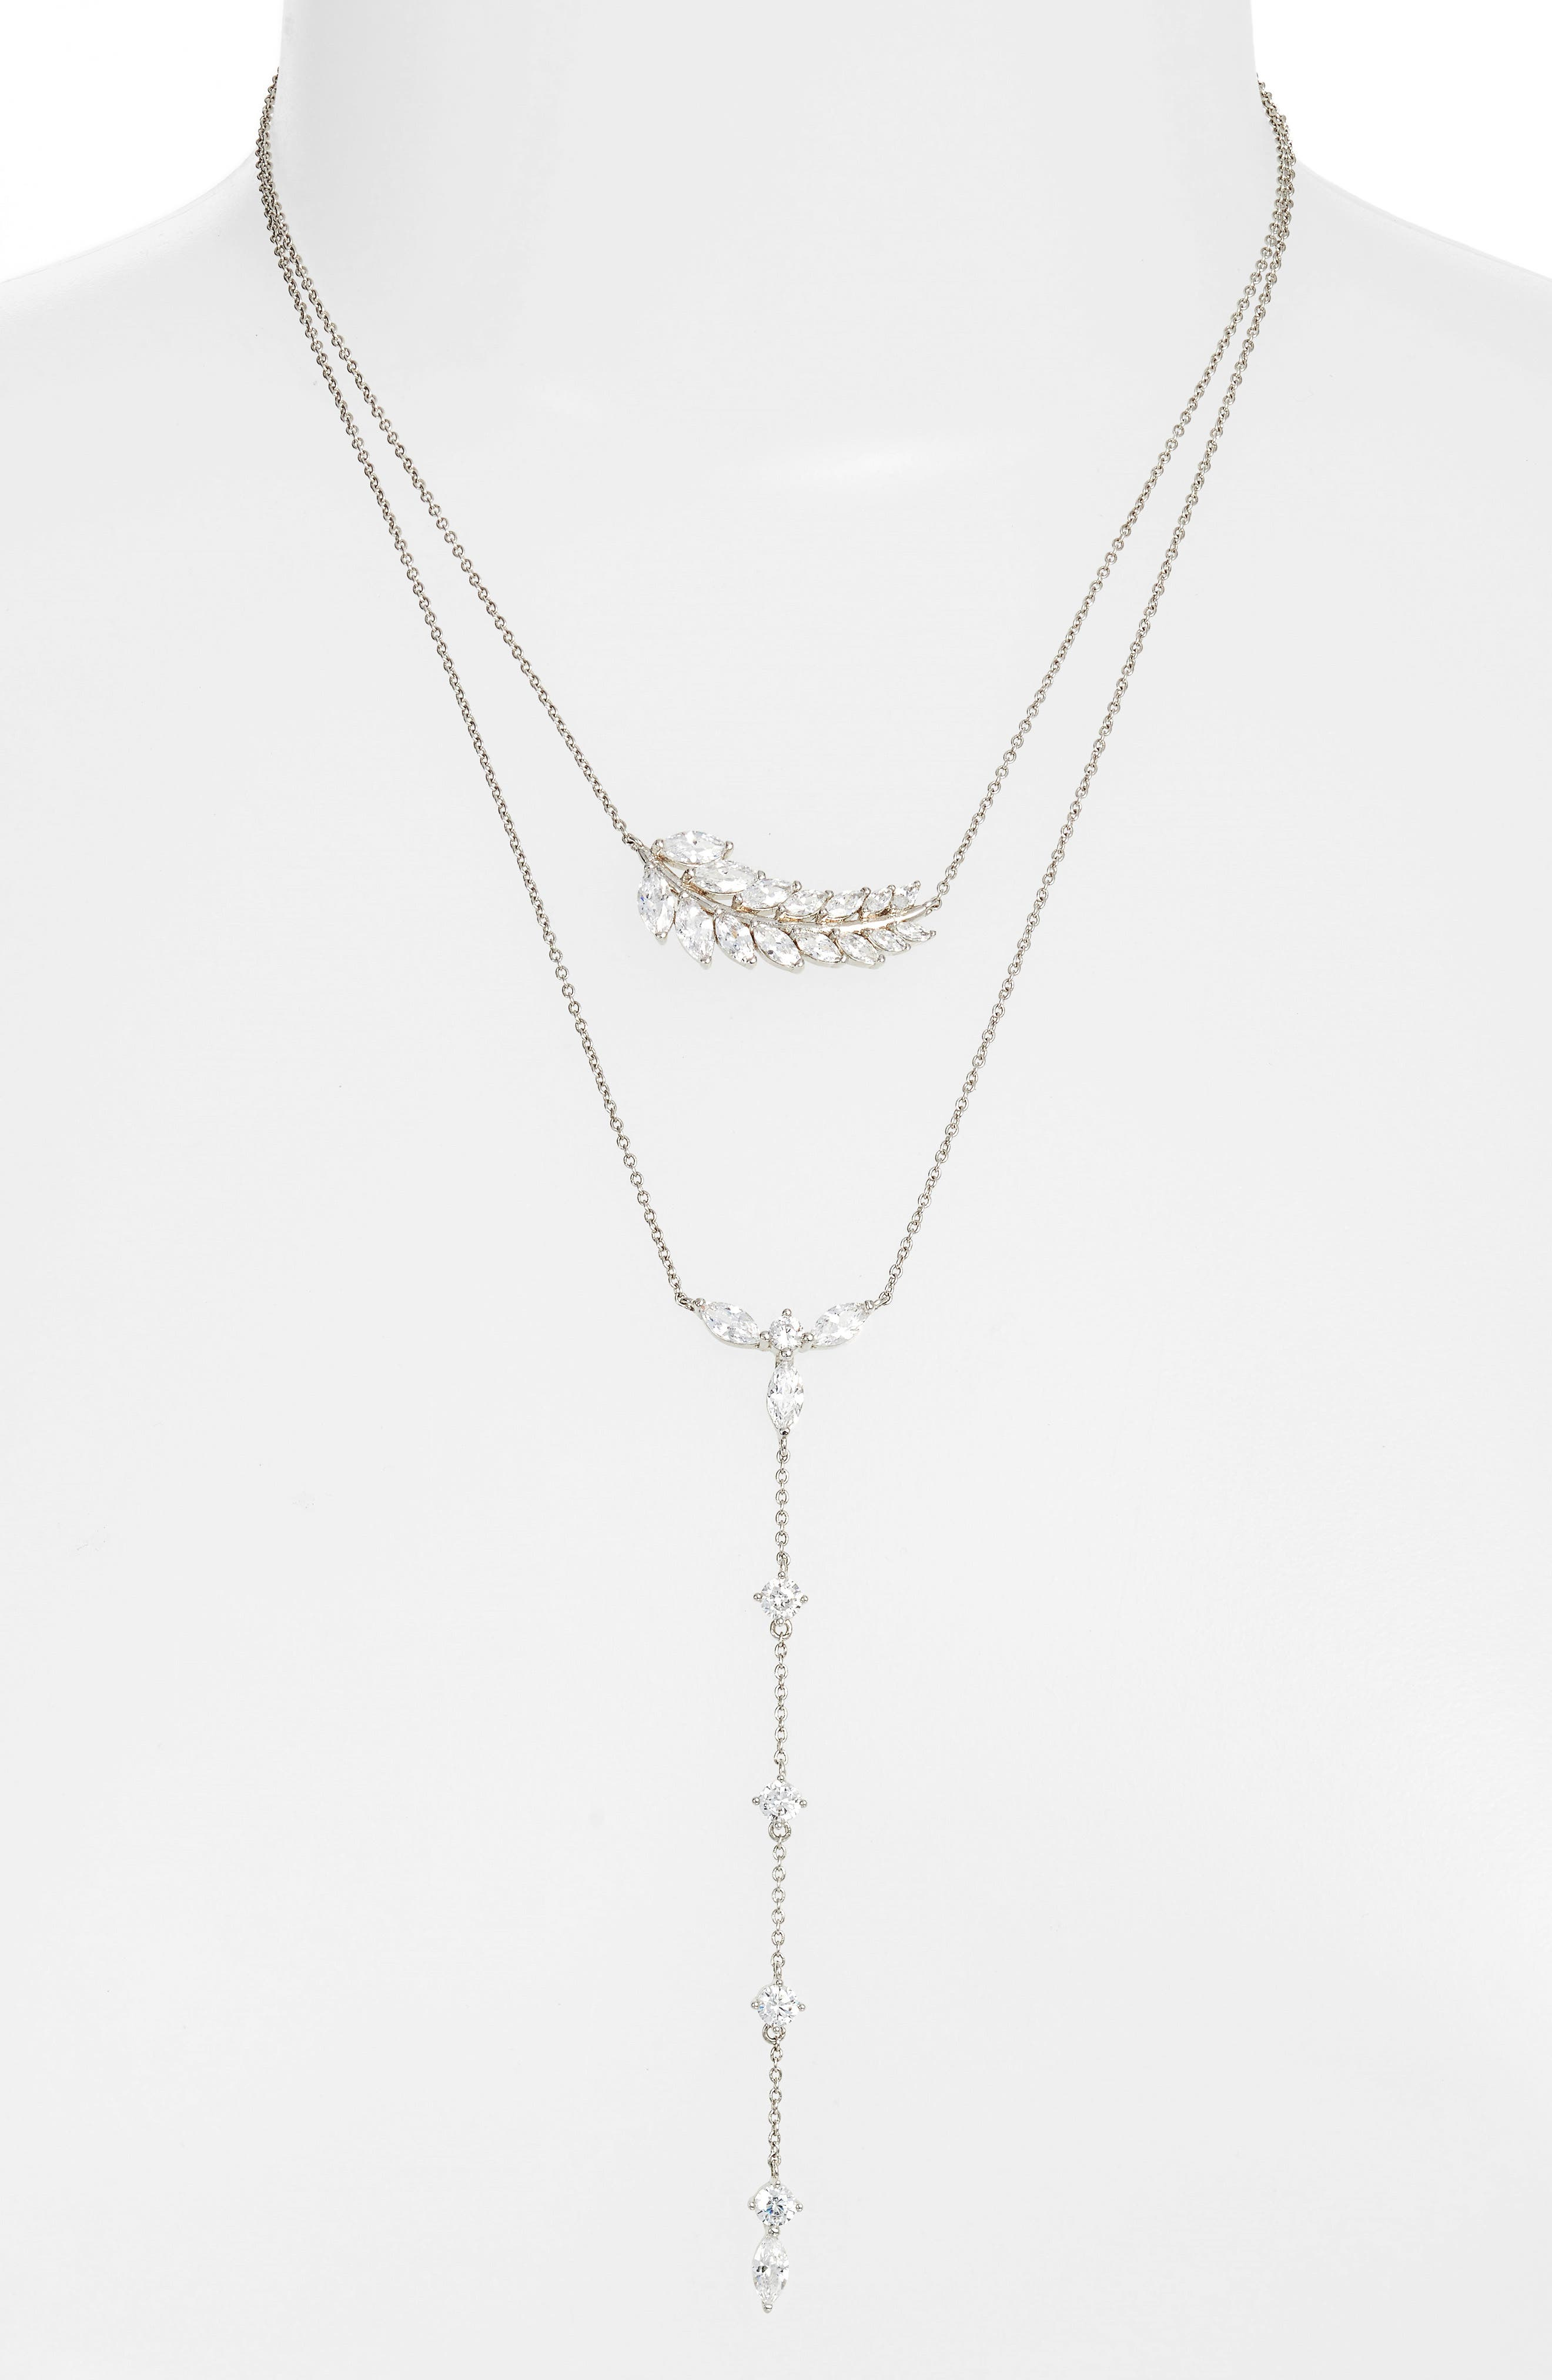 Fern Layered Lariat Necklace,                         Main,                         color, Silver/ White Cz